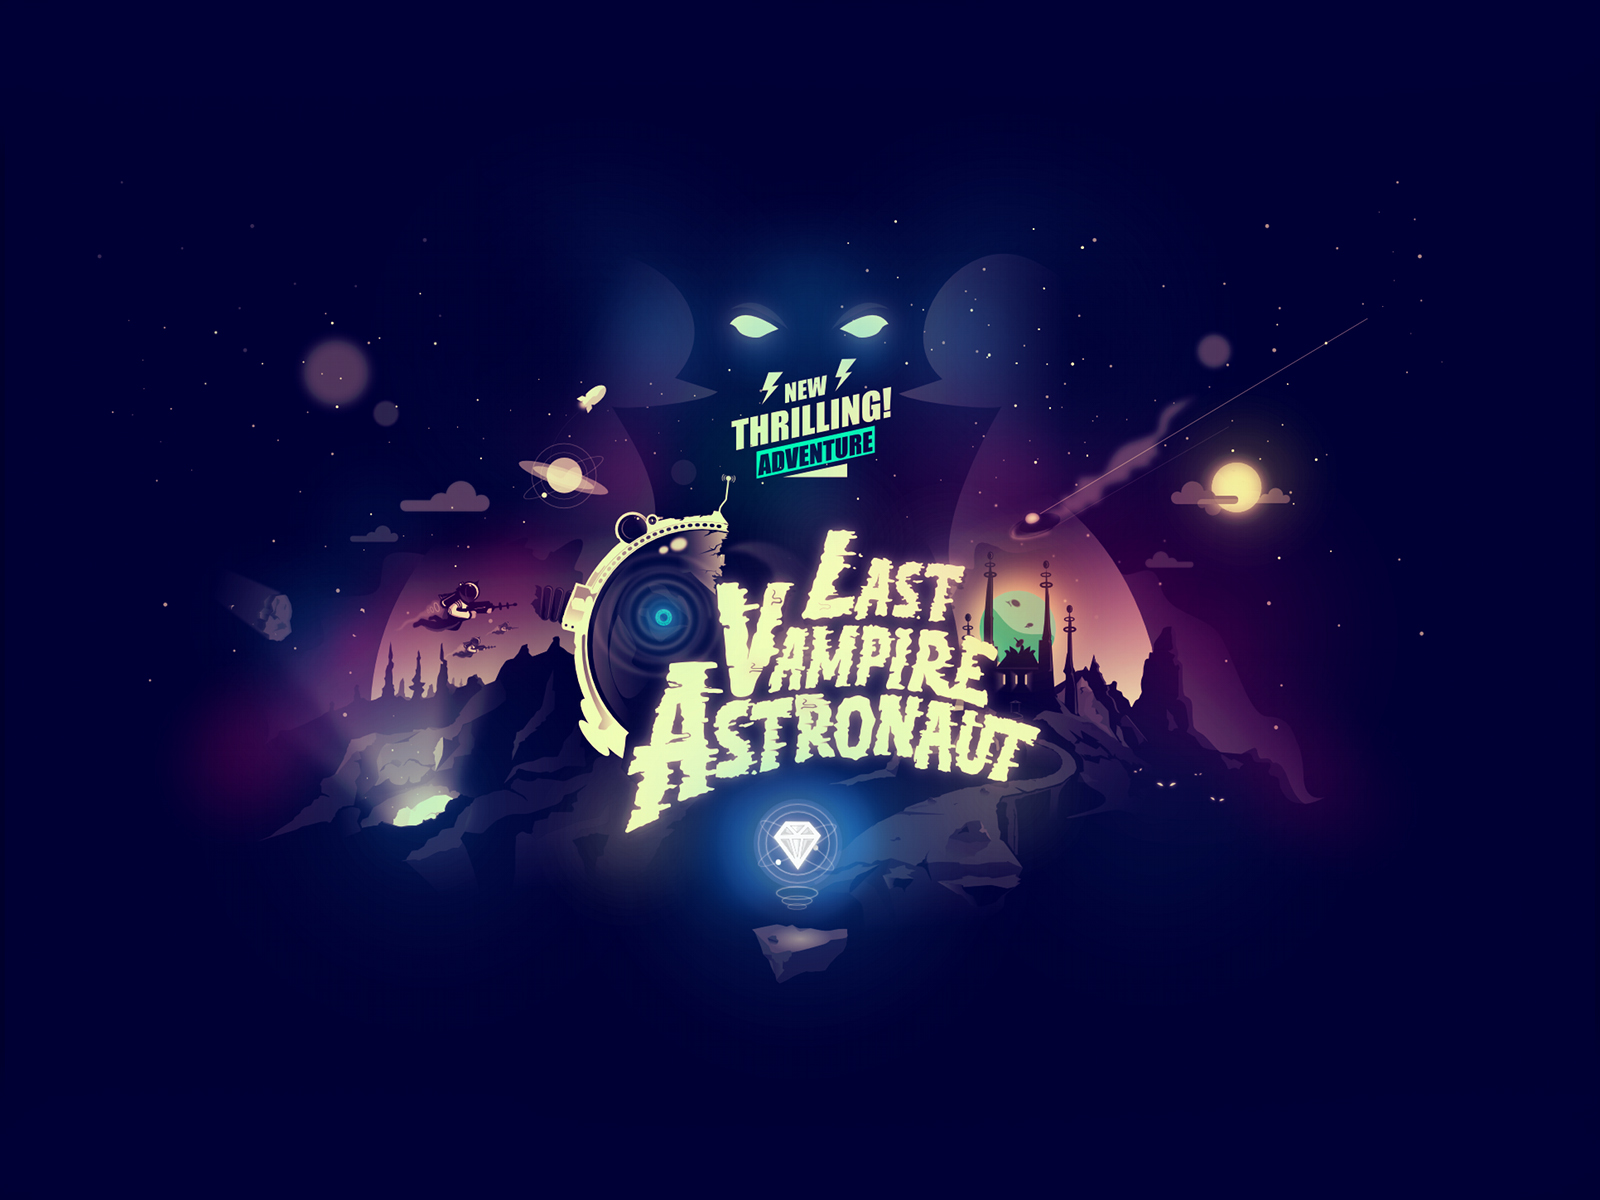 Wallpaper Pack: The Last Vampire Astronaut